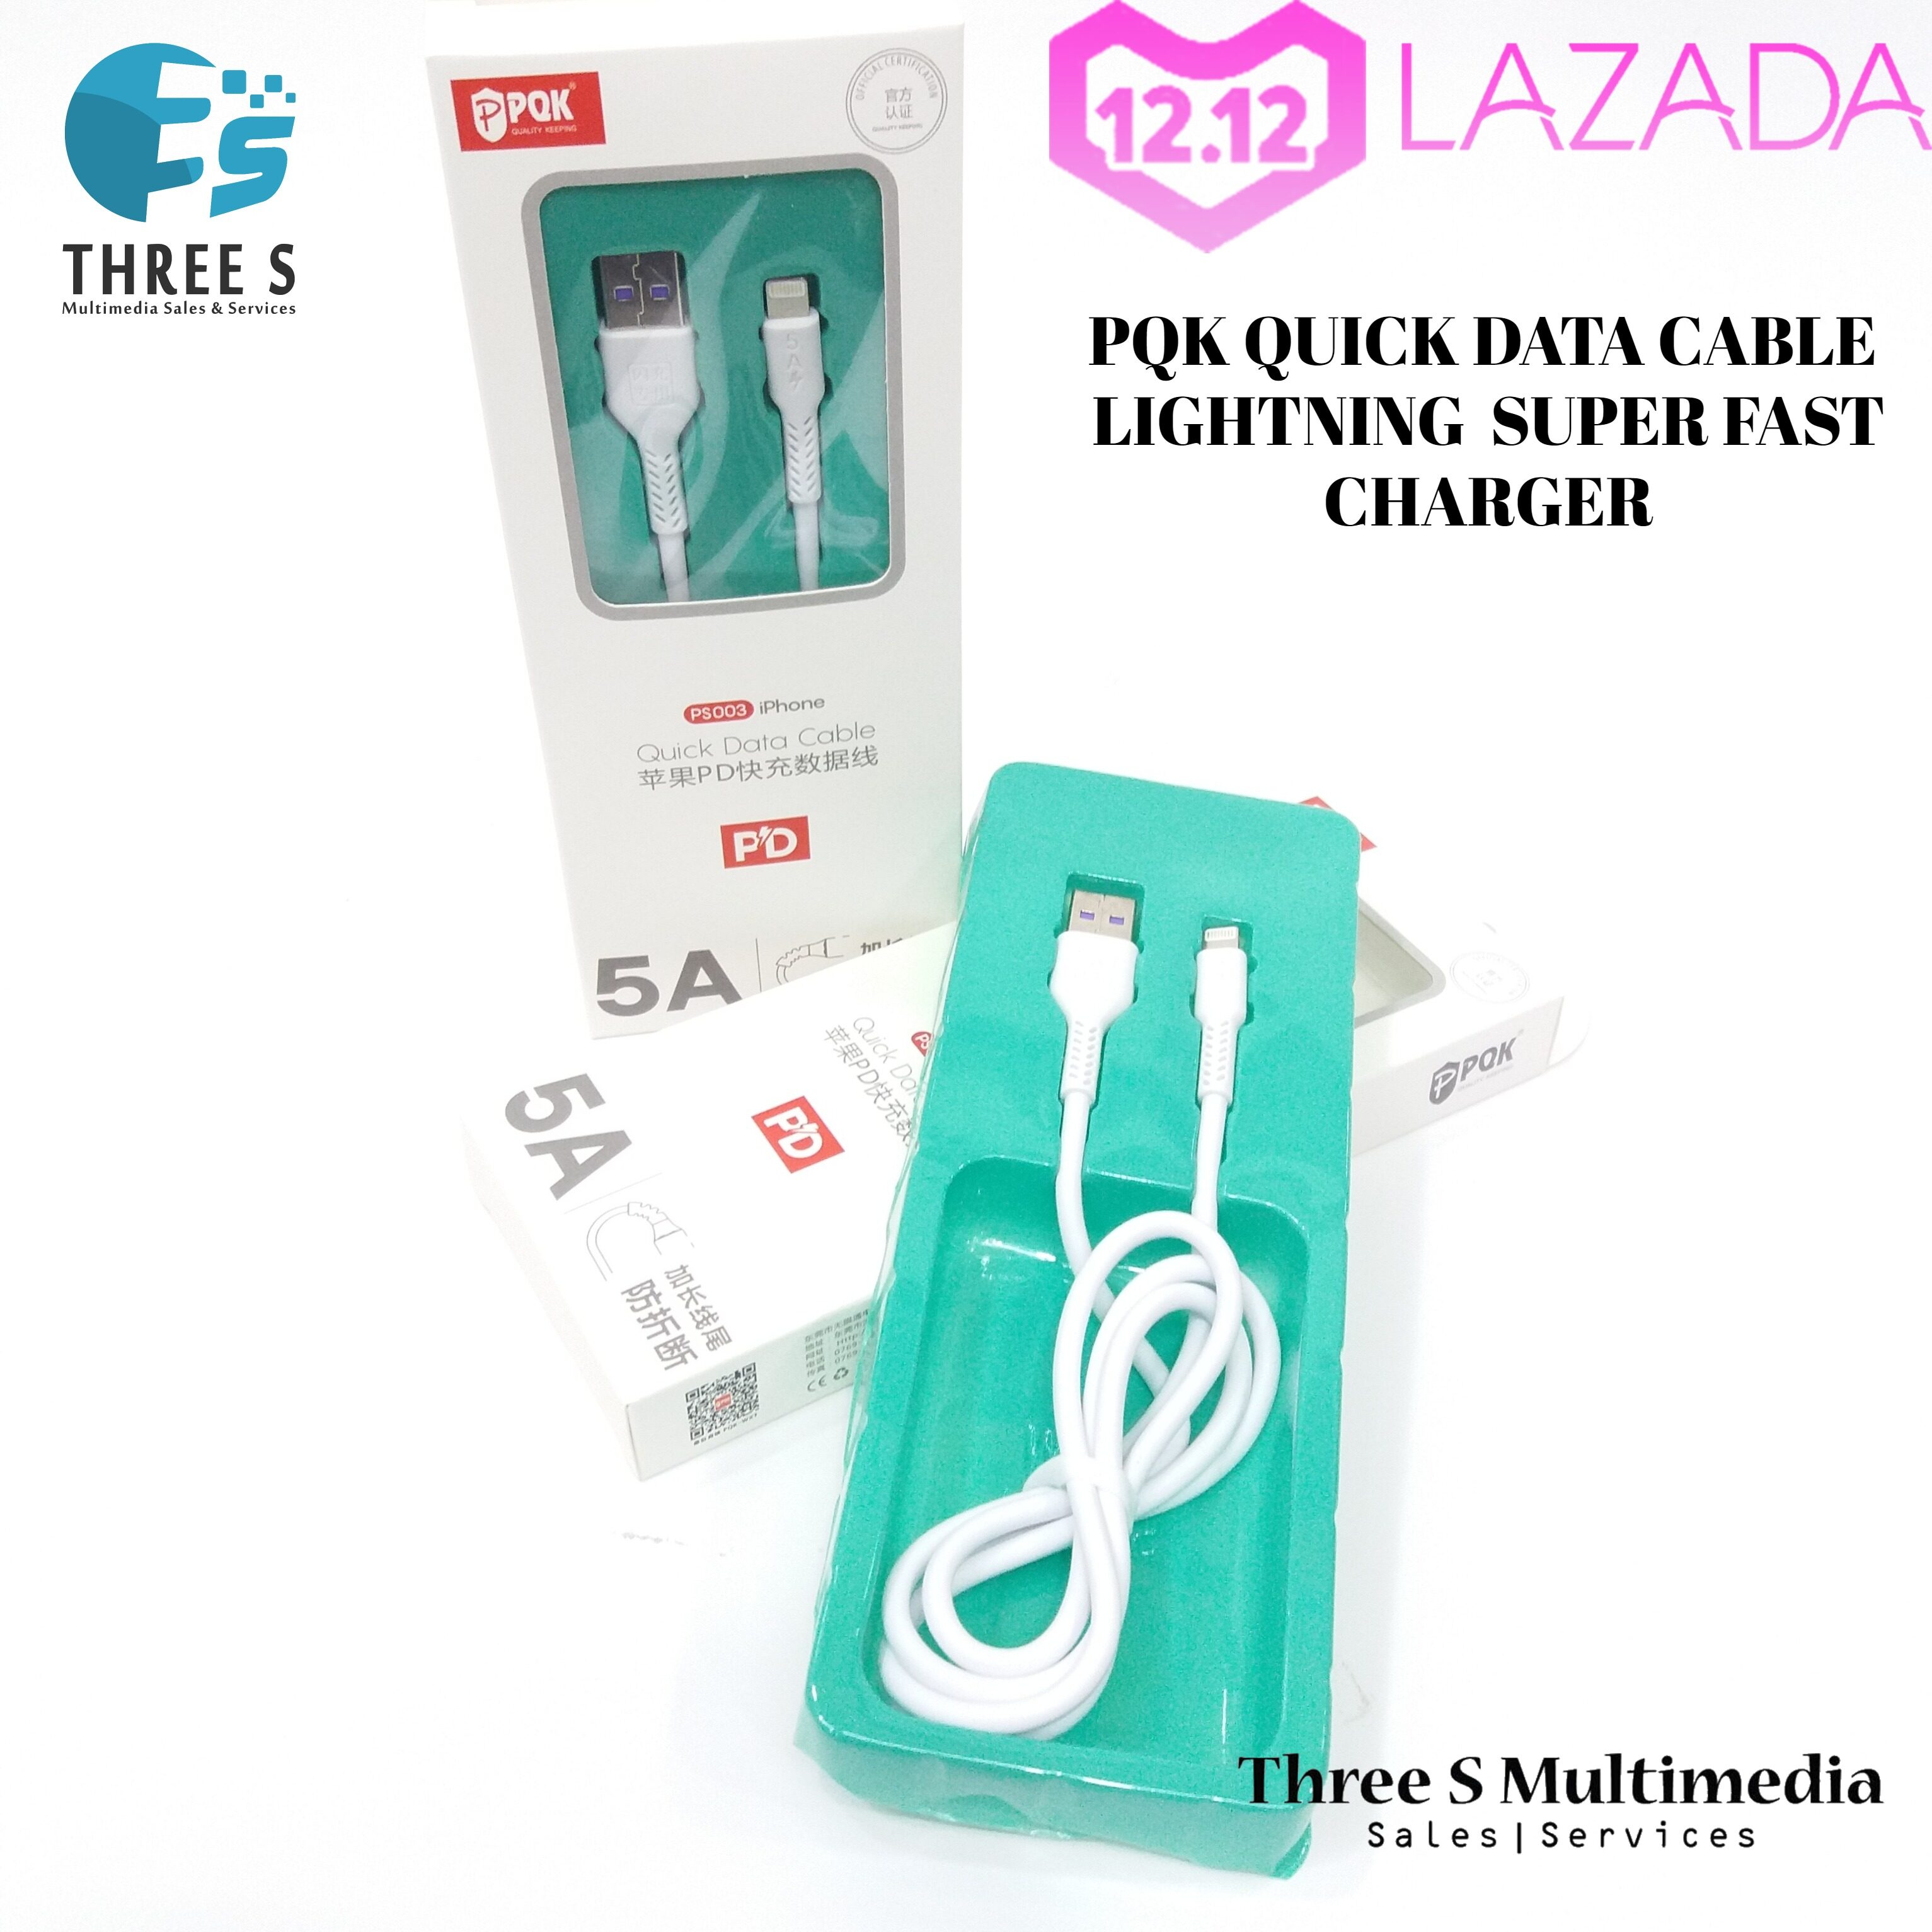 PQK QUICK DATA CABLE SUPER FAST CHARGER & HIGH QUALITY FOR LIGHTNING/ TYPE C/ MICRO USB 5A